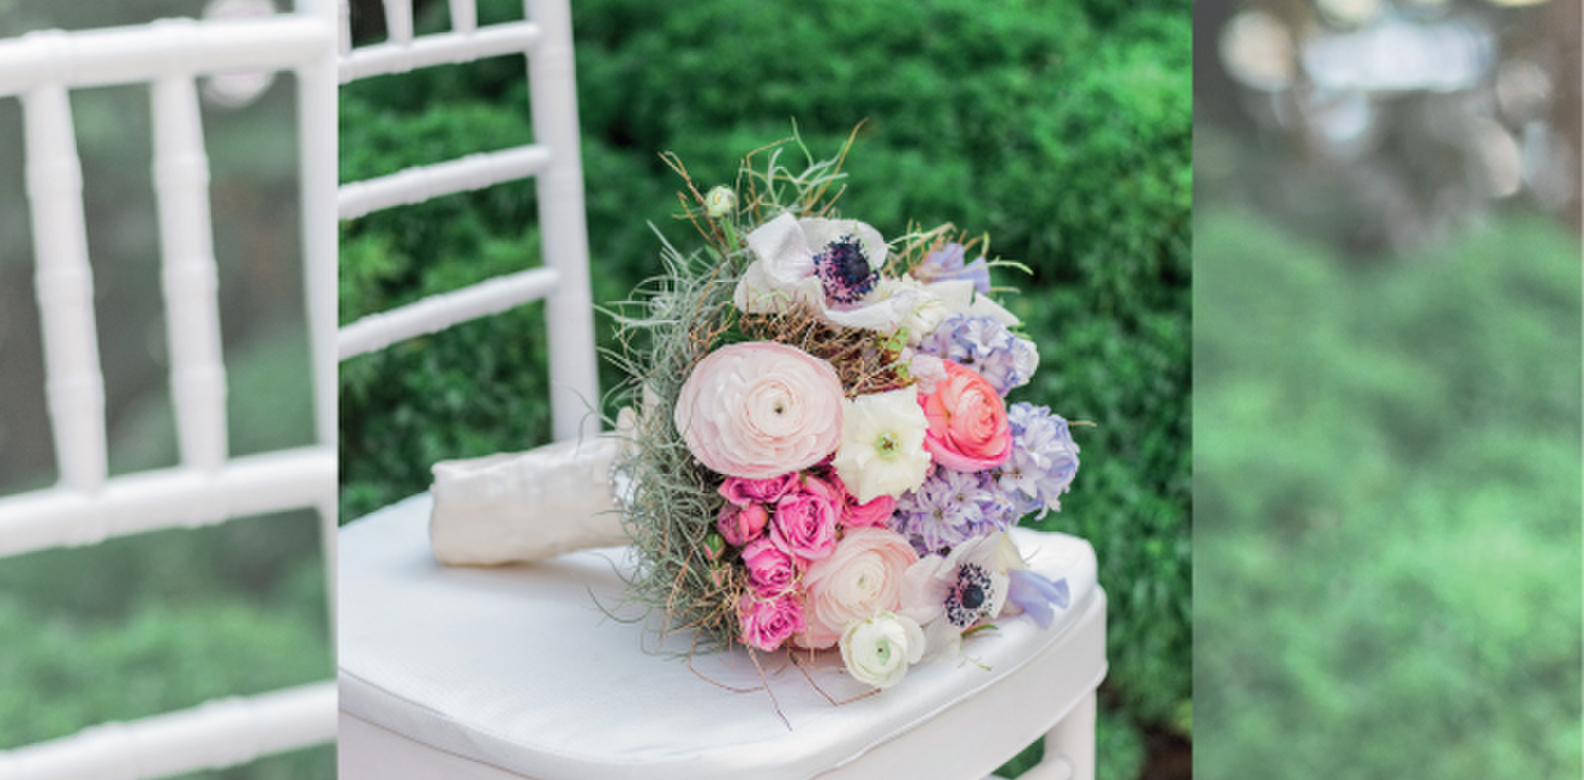 10 Of The Best Wedding Bouquets Singapore Tatler